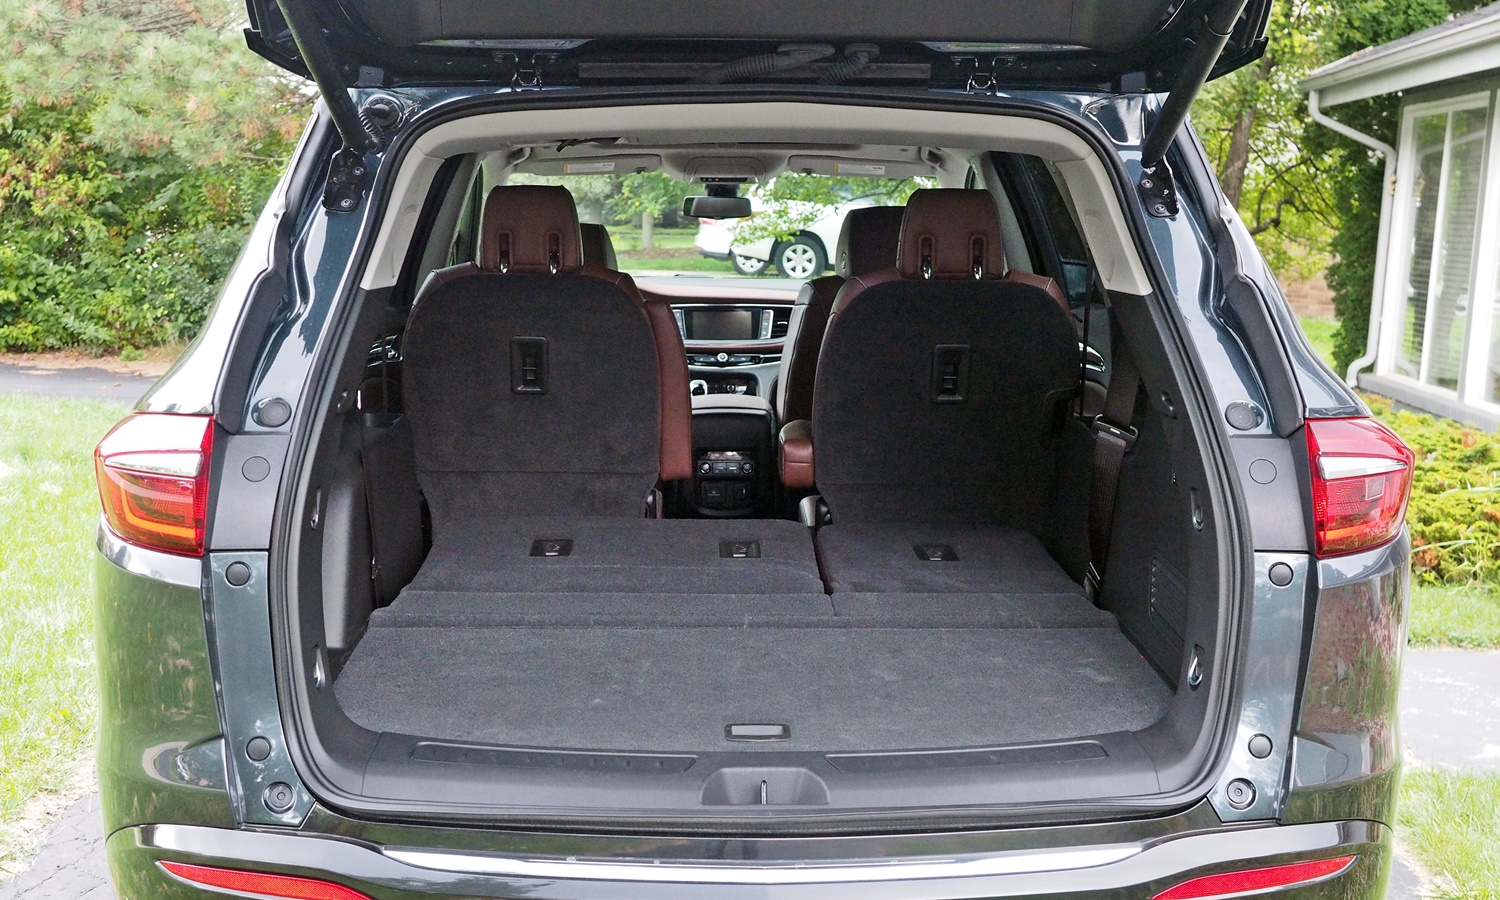 Buick Enclave Photos: Buick Enclave cargo area with second row folded